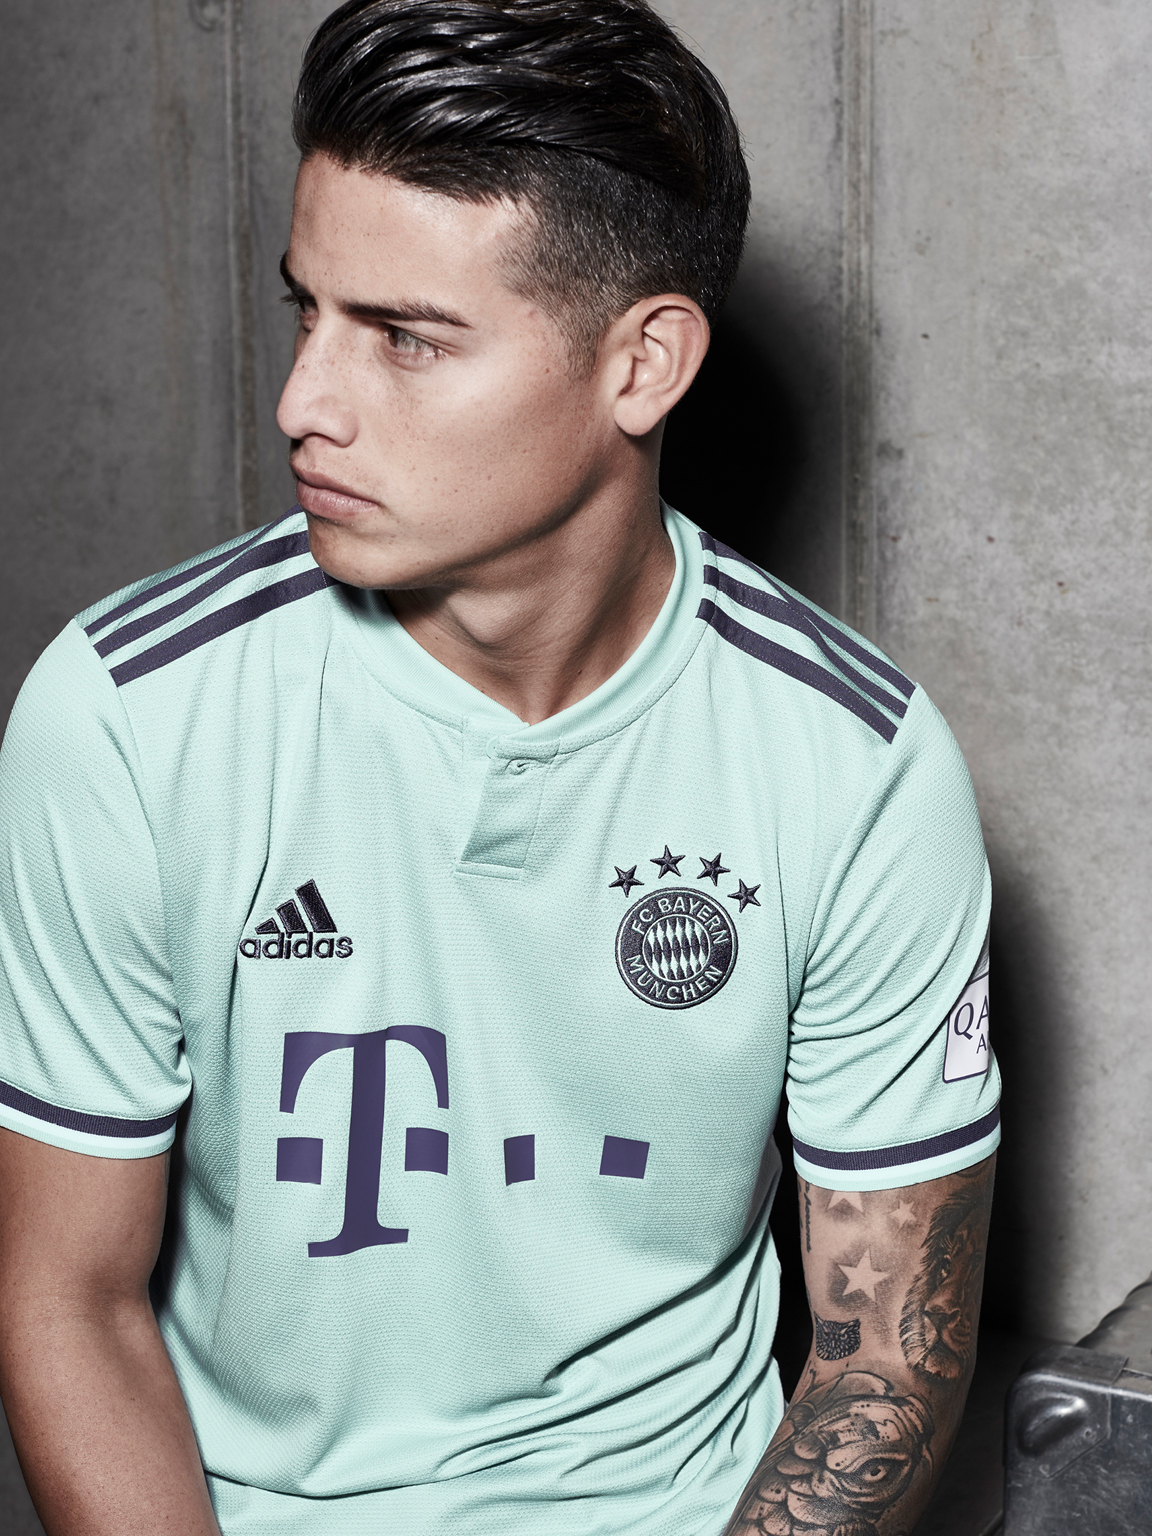 adidas launches the FC Bayern Munich third Kit for the 2019